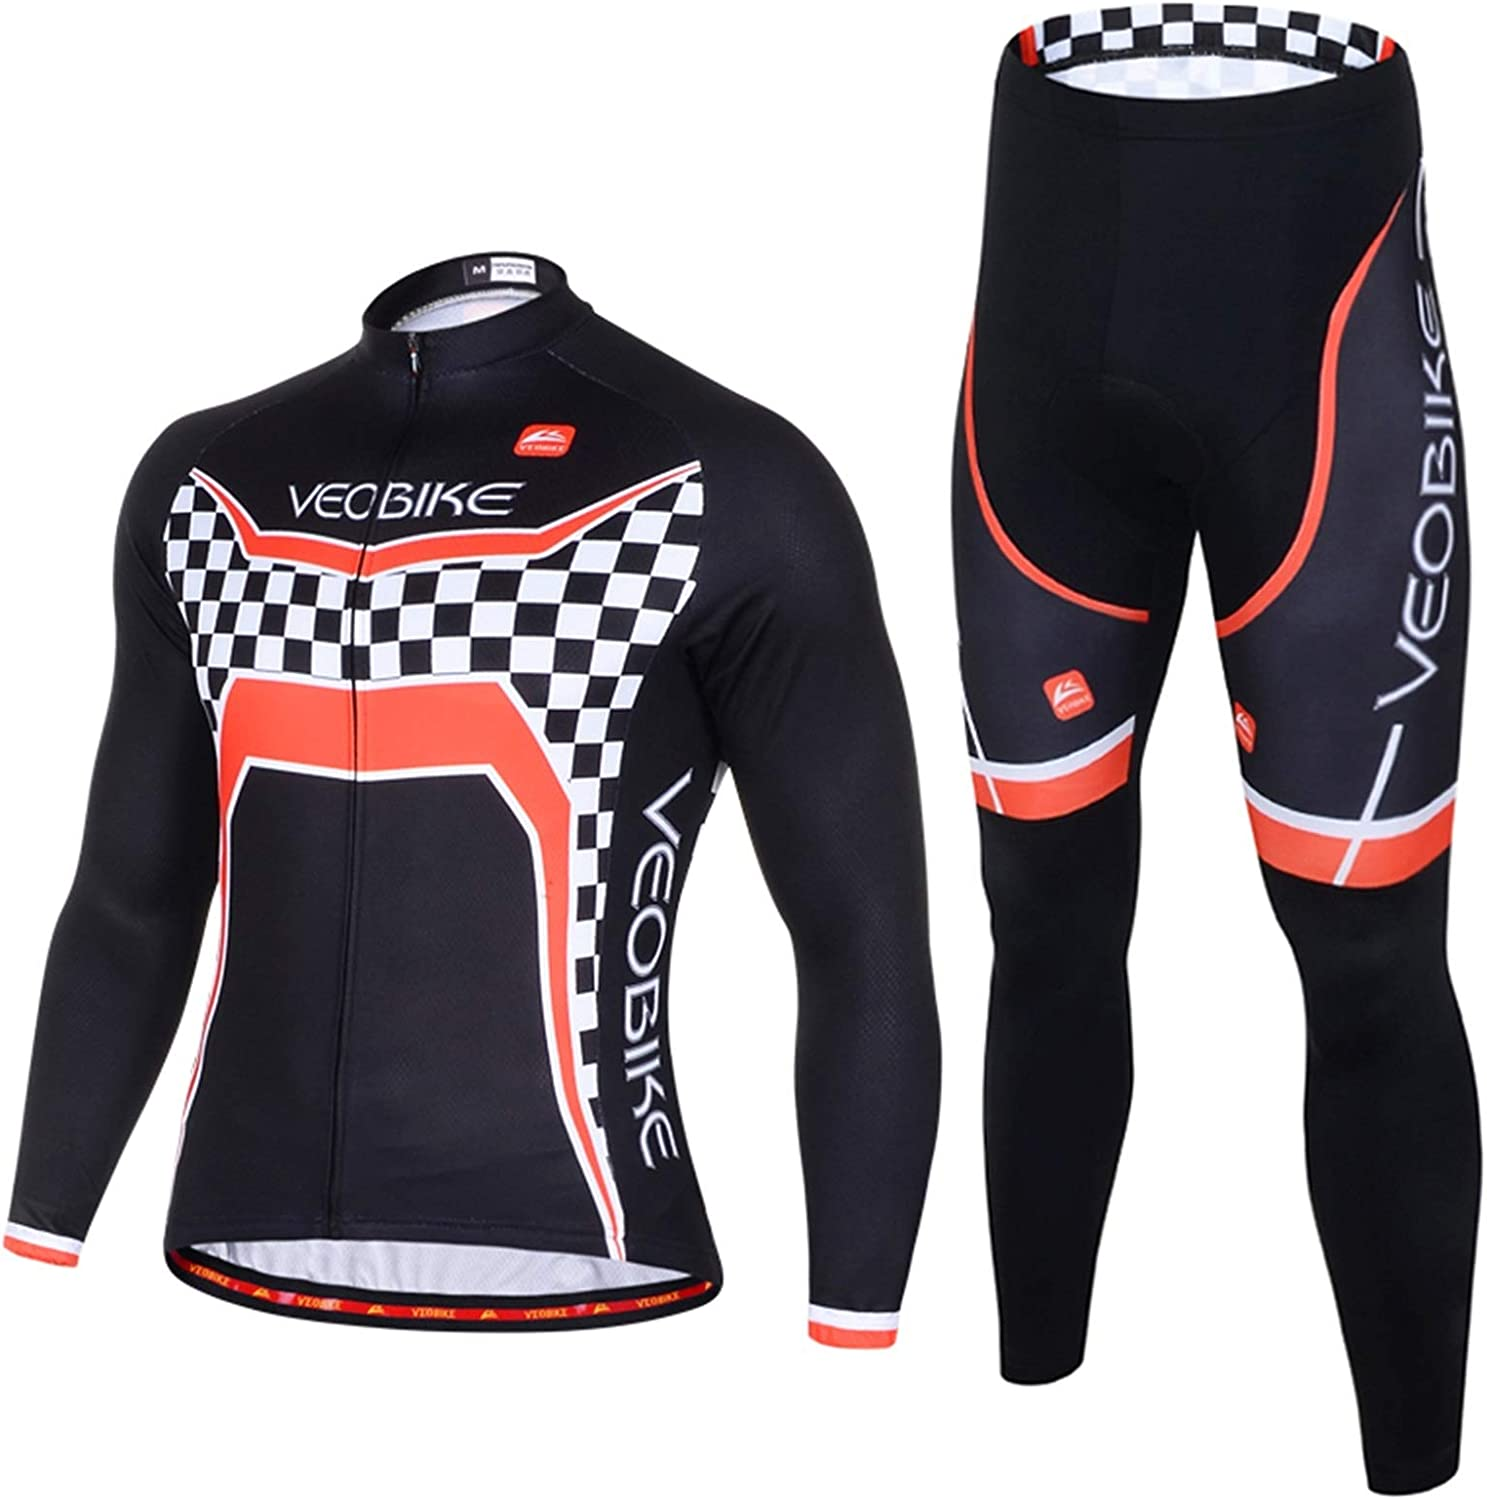 Epinki Men Spring Autumn Summer Cycling Jersey for Outdoor and Multi Sports Cyclist Shirts and Tights